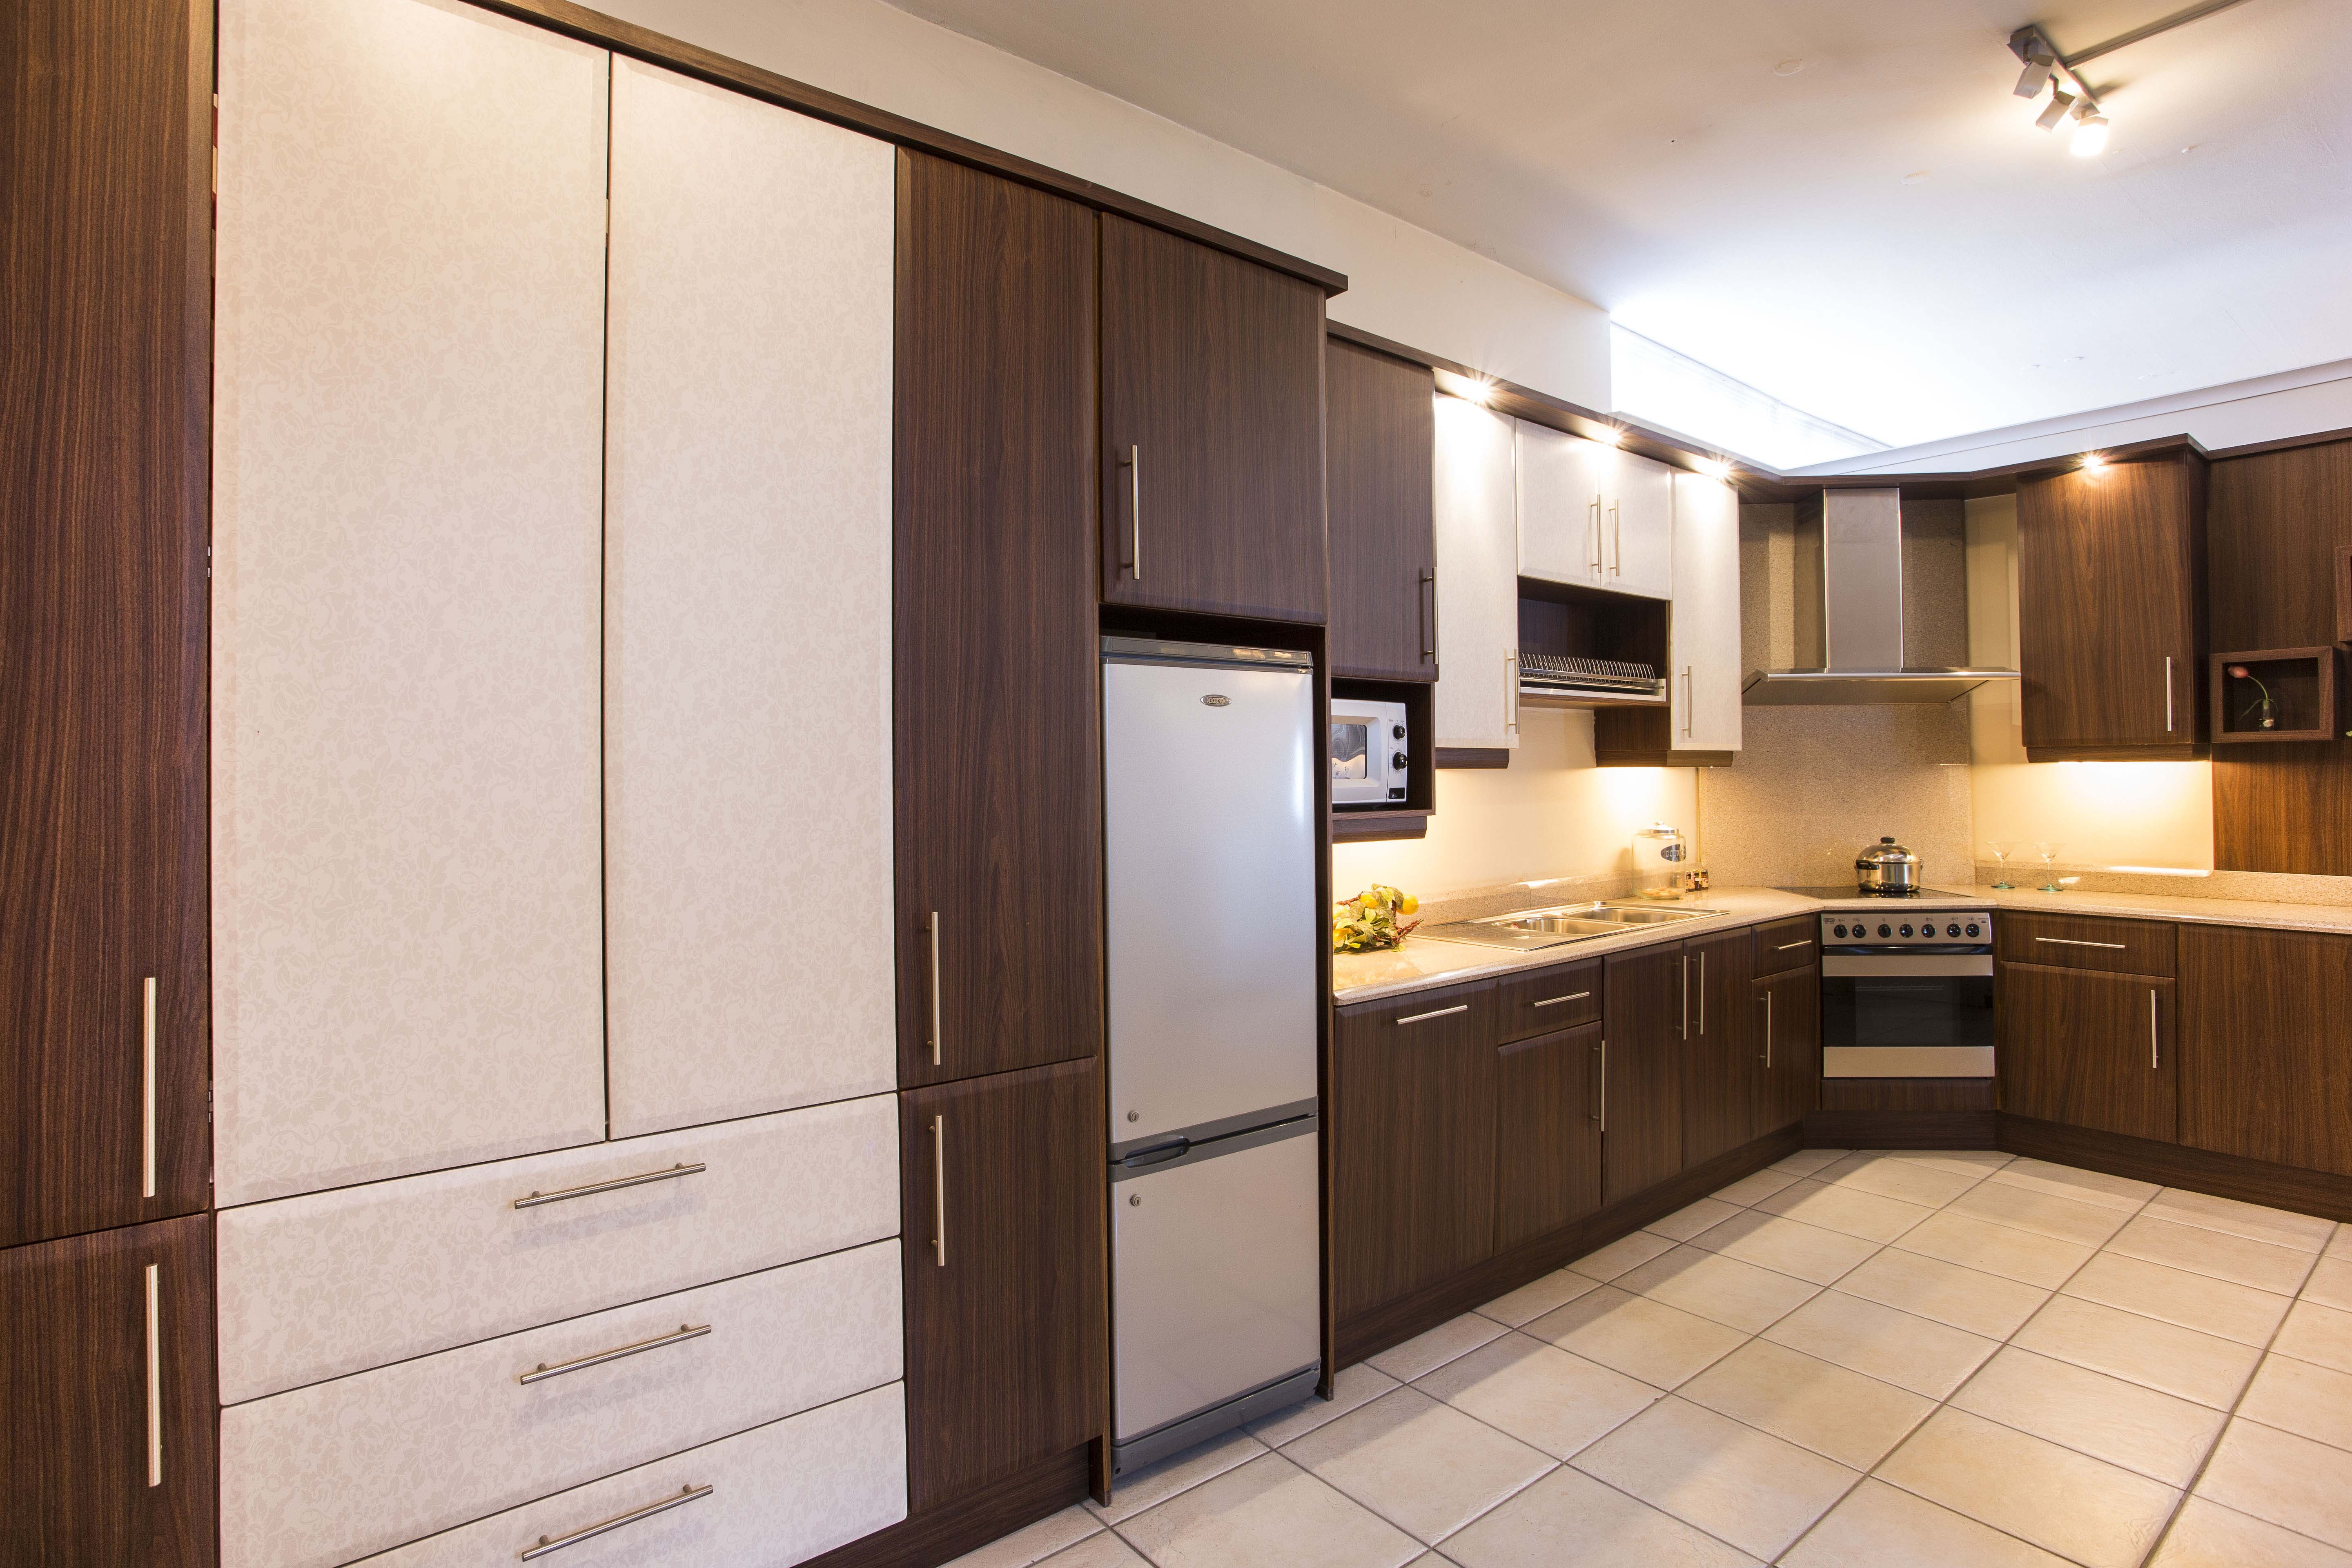 Outstanding Kitchen Designs Umhlanga Pictures   Simple Design Home .